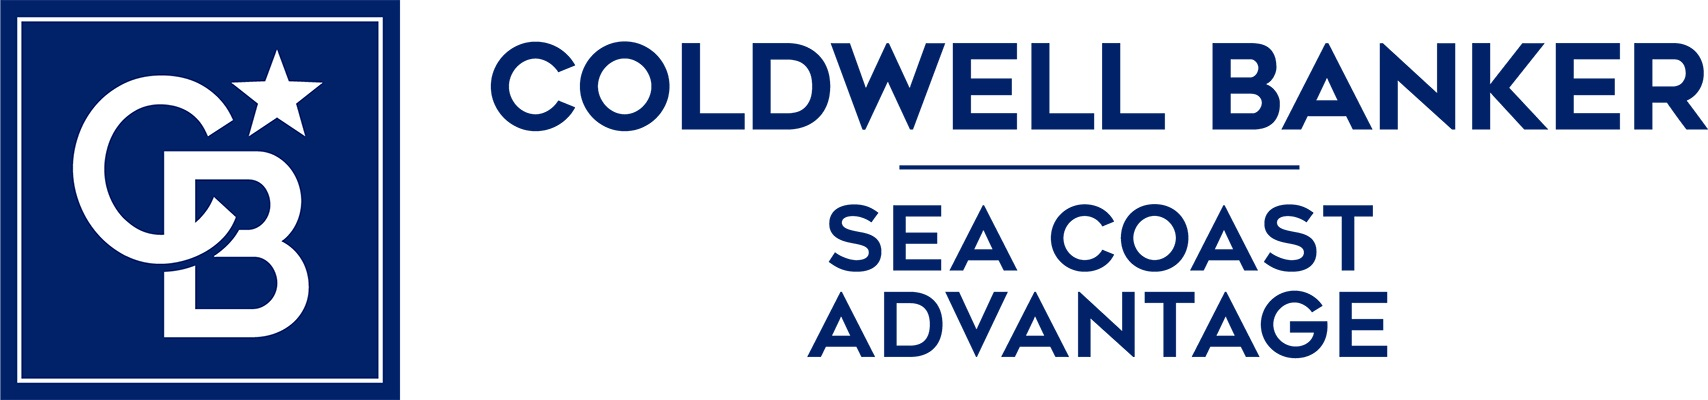 Charlene Colehower - Coldwell Banker Sea Coast Advantage Realty